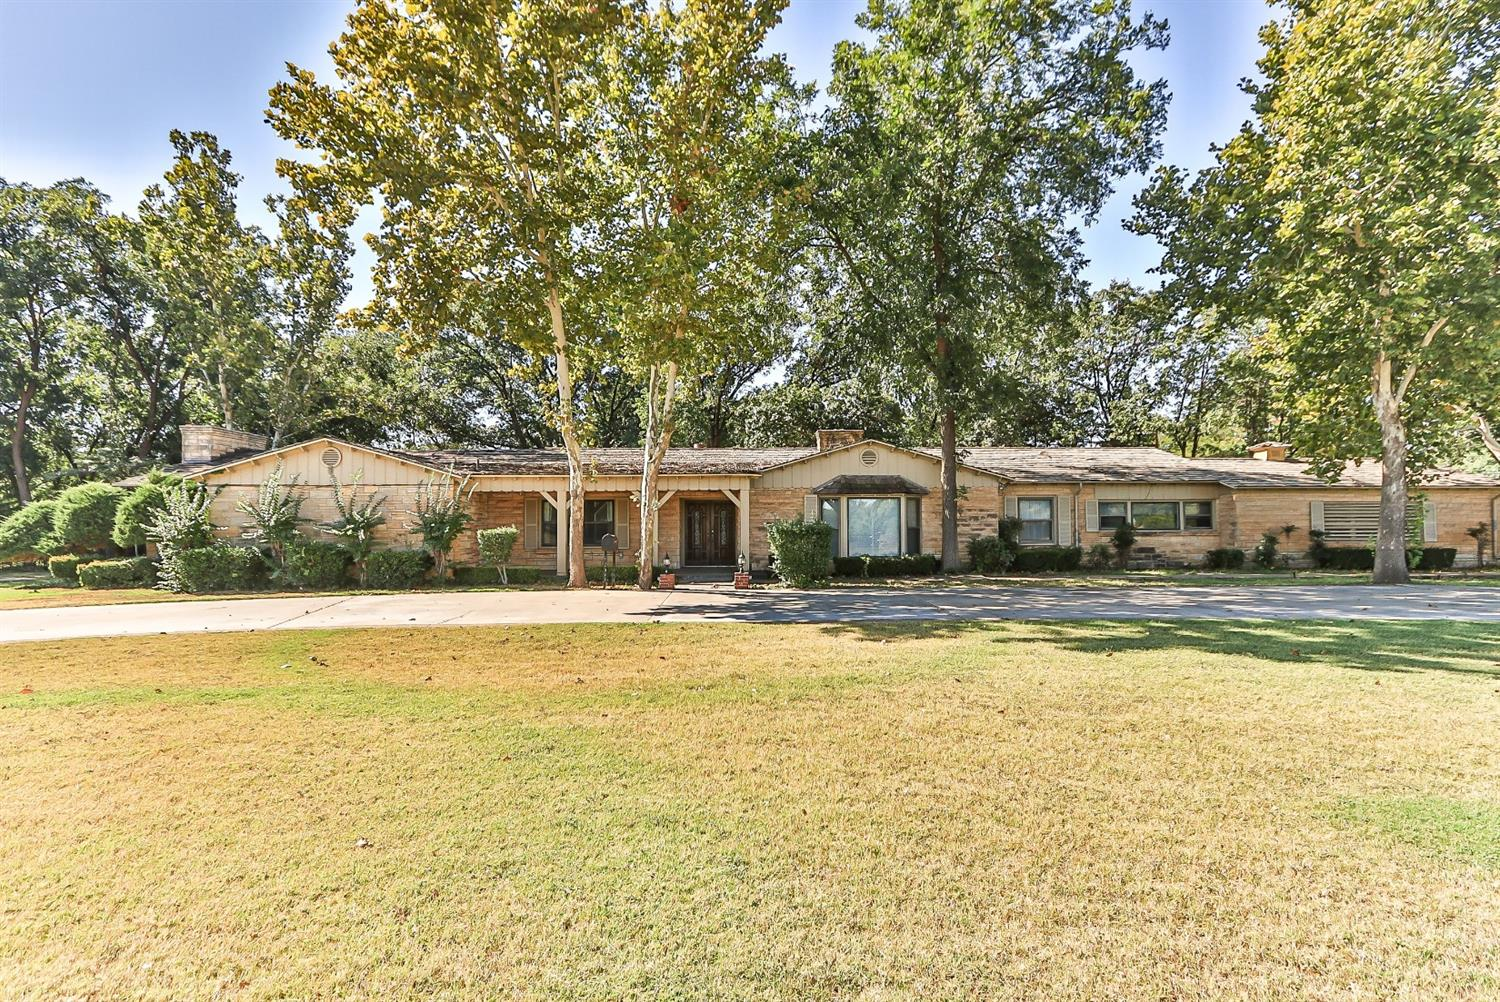 Welcome to a  Grand Vintage Ranch style home in prestigious Bobalet Heights on nearly 2 acreas. This is the one you have been waiting for. Use your imagination and create your dream home.  The main house has 3225 sq feet with 4 beds, 3 baths and 4 garages with carports for 4 cars. and a 594 sq foot 2/1 Apt. on the back of the lot. One of the living areas has built-ins that would be great by a dining table and a second great room has a bar in the corner. This spacious home is located on a corner lot with a circle drive; a pool and decking with separate dressing areas.  A water well for the large yard a garden area with multiple pecan trees.  2 garages could make a perfect workshop. Make this incredible home yours today!